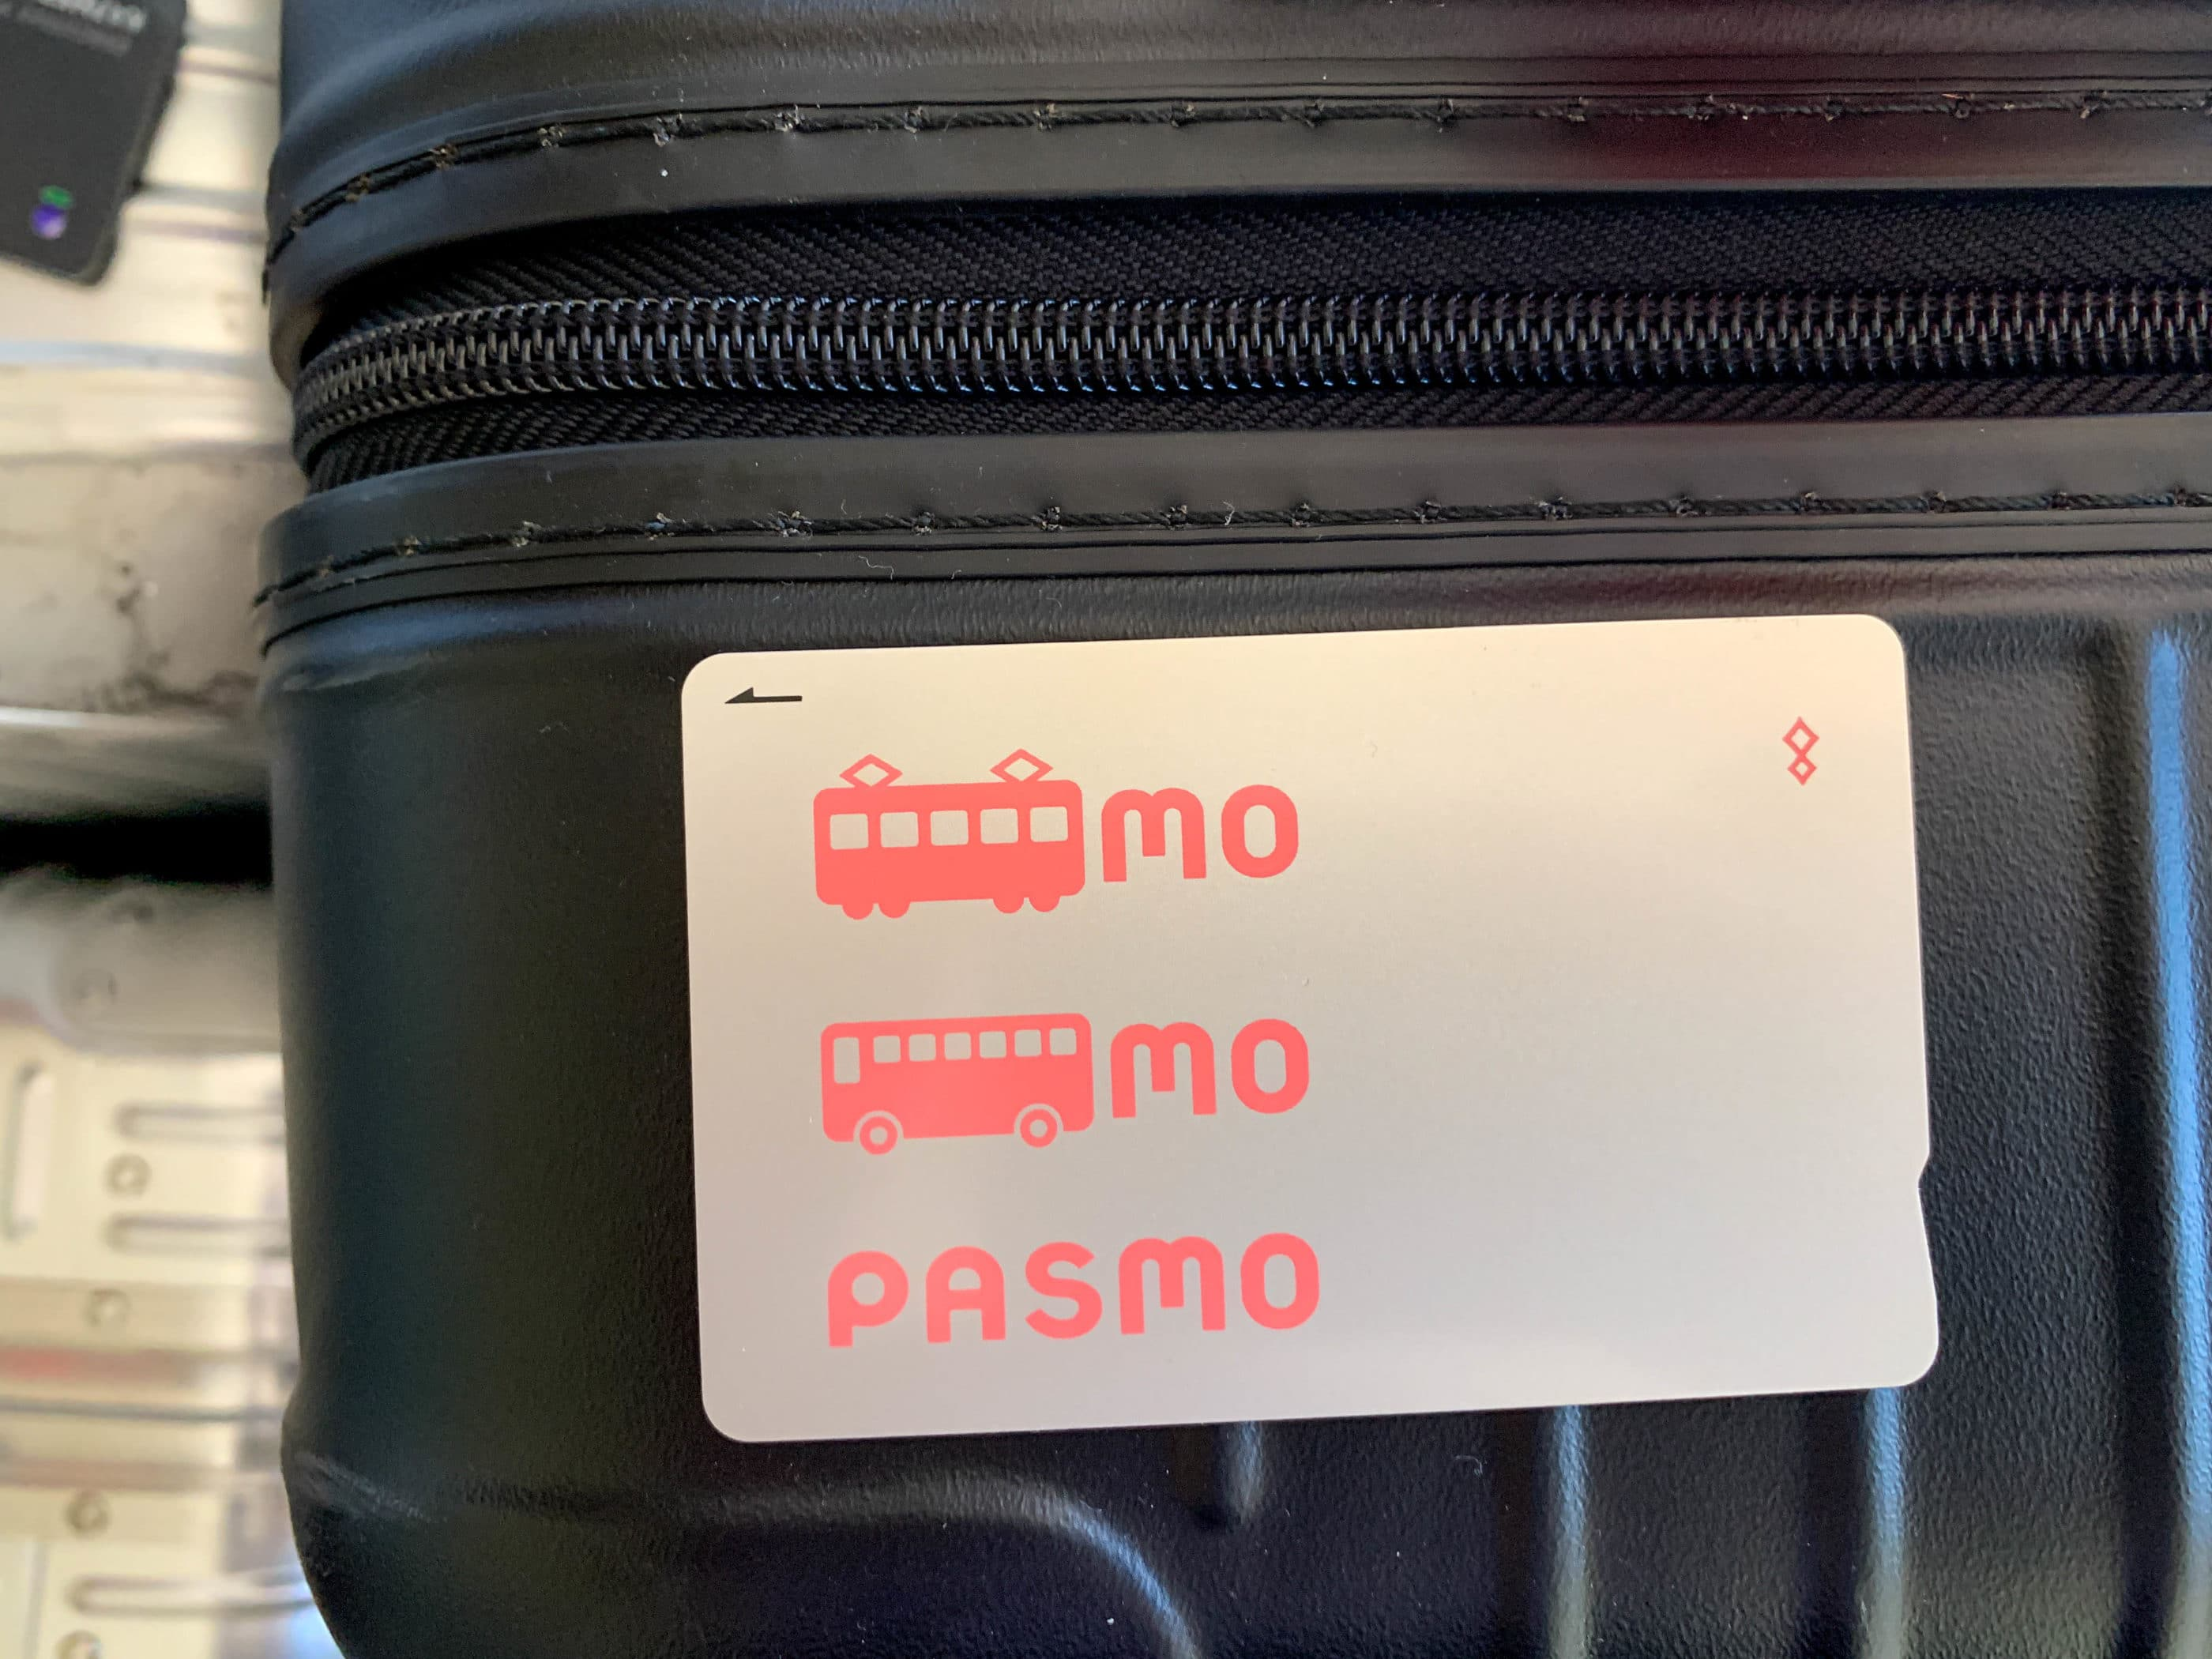 A Pasmo card sitting on top of a black suitcase